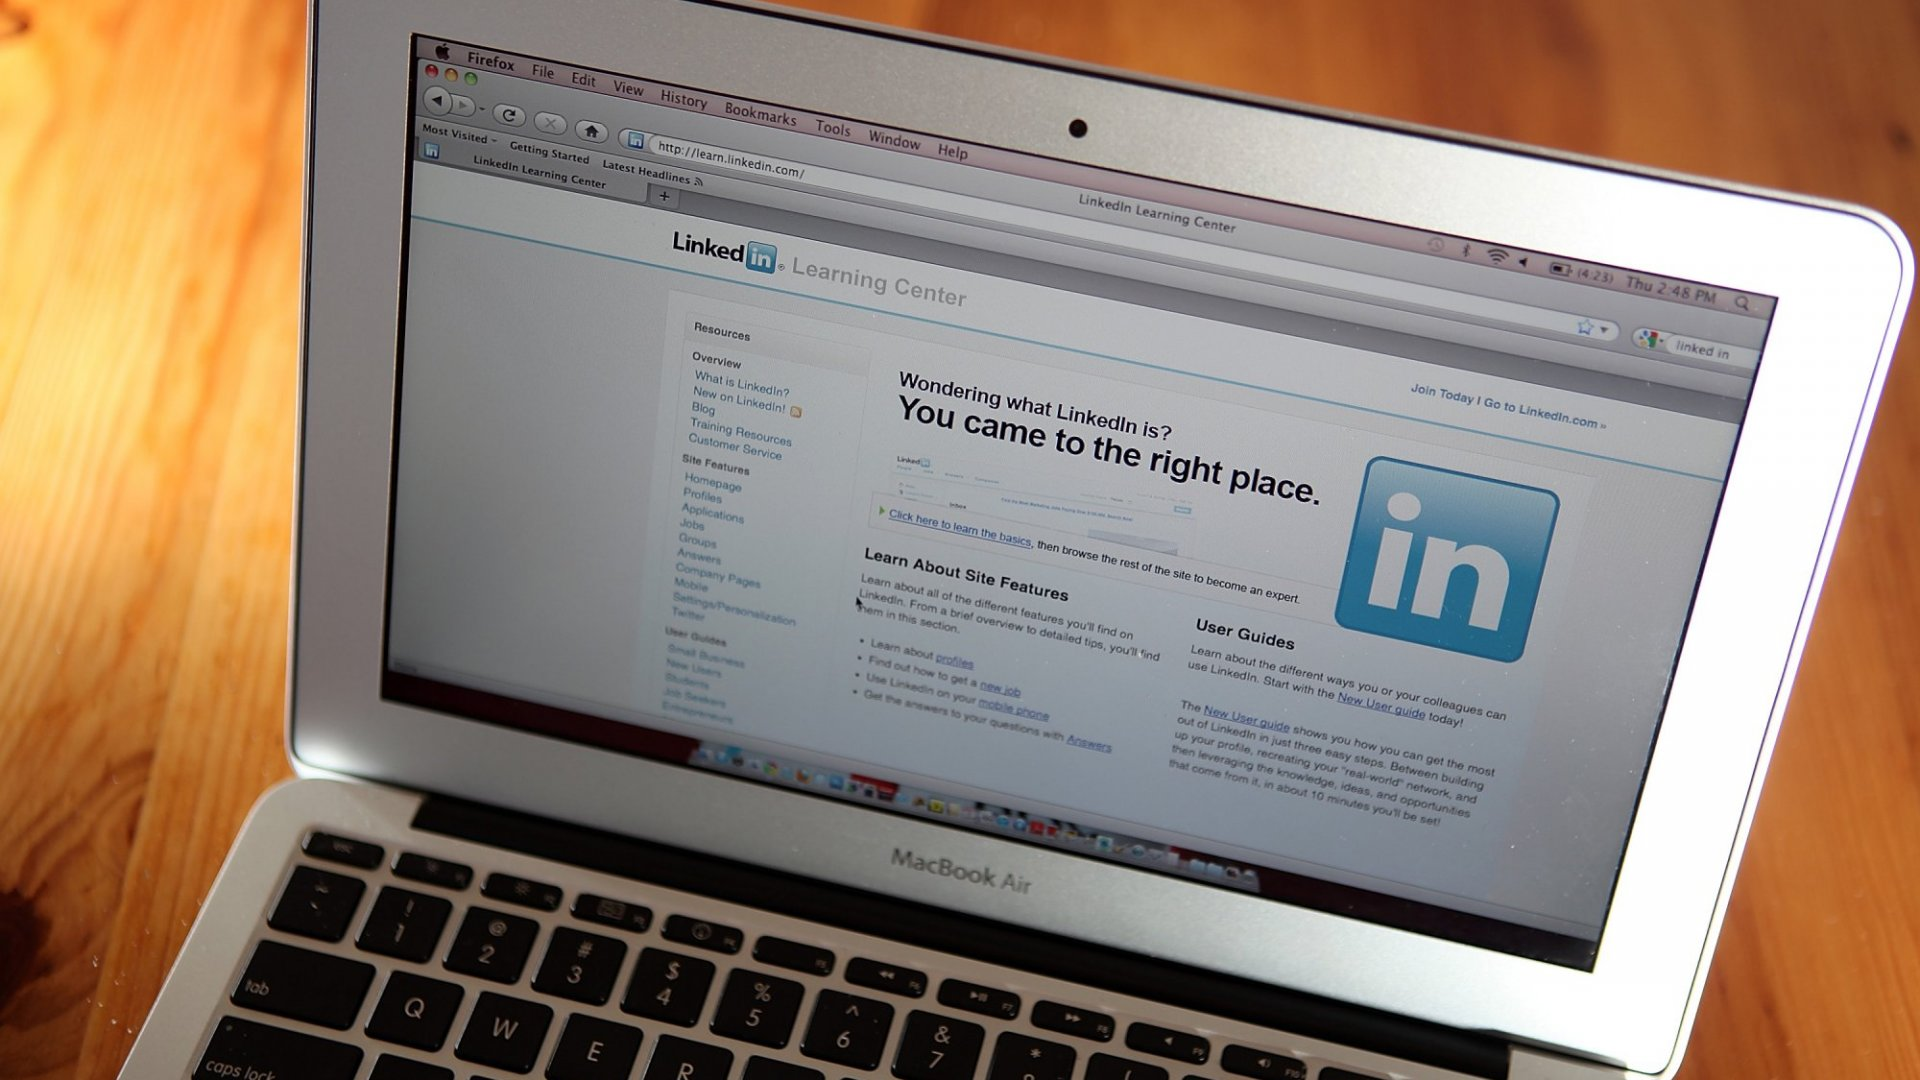 7 Pro Tips That Will Make Your LinkedIn Profile Awesome